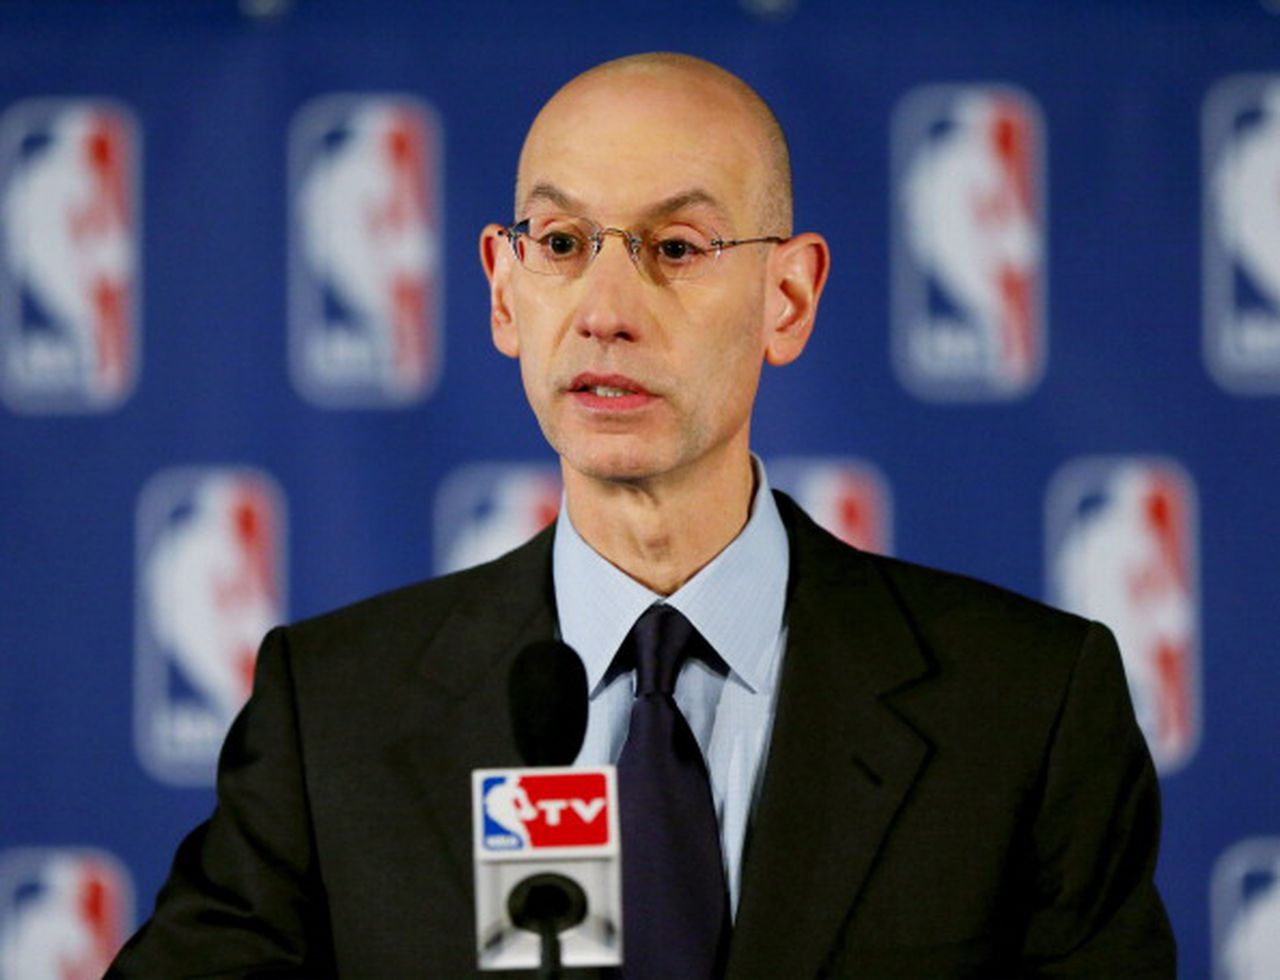 NBA sets July 31 target date for return to play; Cavaliers' season likely over